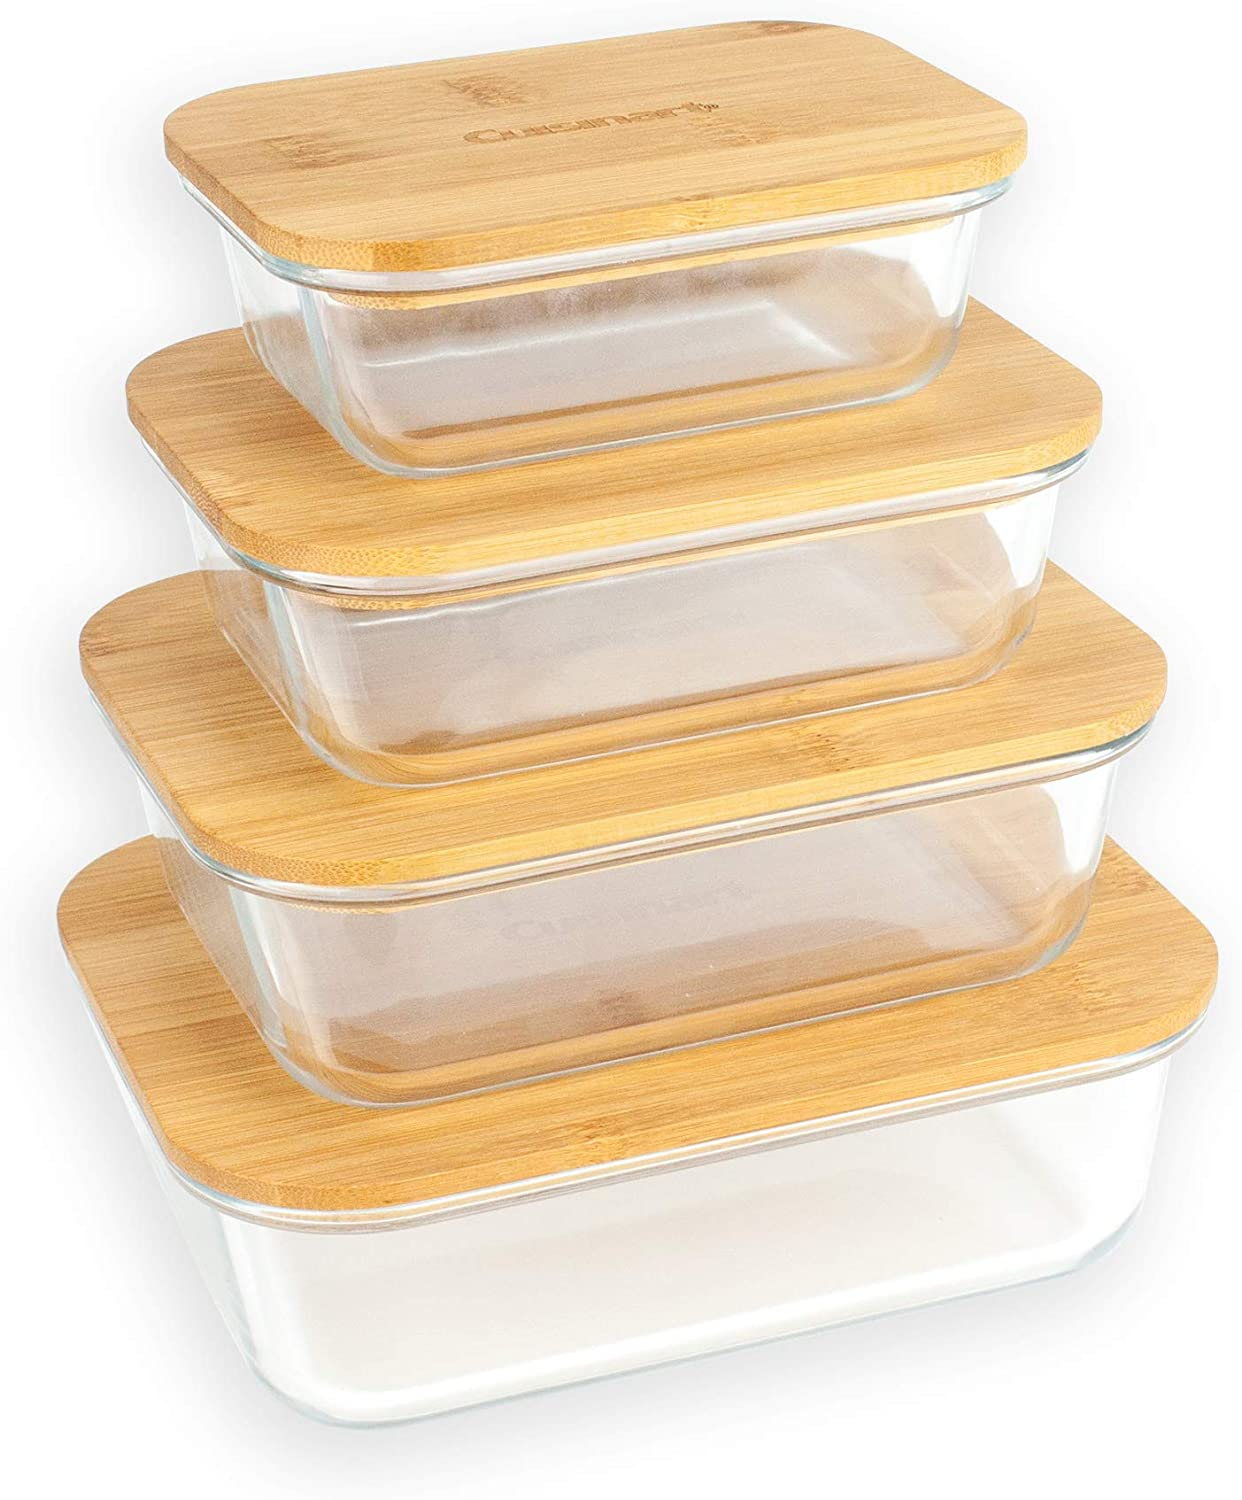 Cuisinart Glass Containers with Bamboo Lids - 8 Piece Rectangle Glass Food Storage Containers with Lids Set - Food Containers Keep Food Fresh, Perfect for Meal Prep and Kitchen Storage Organization